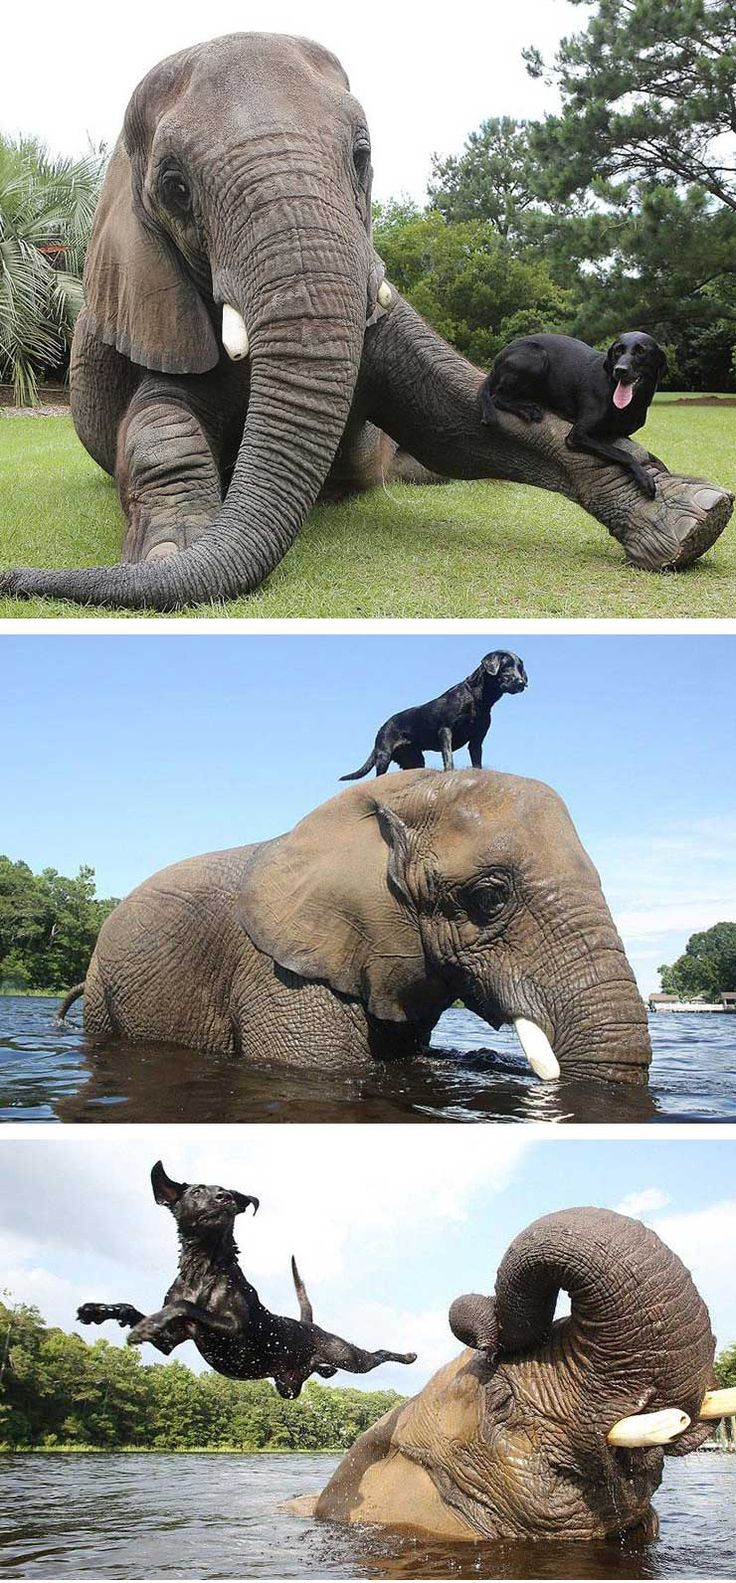 Adorable unexpected animal friendship. I adore interspecies friendships.